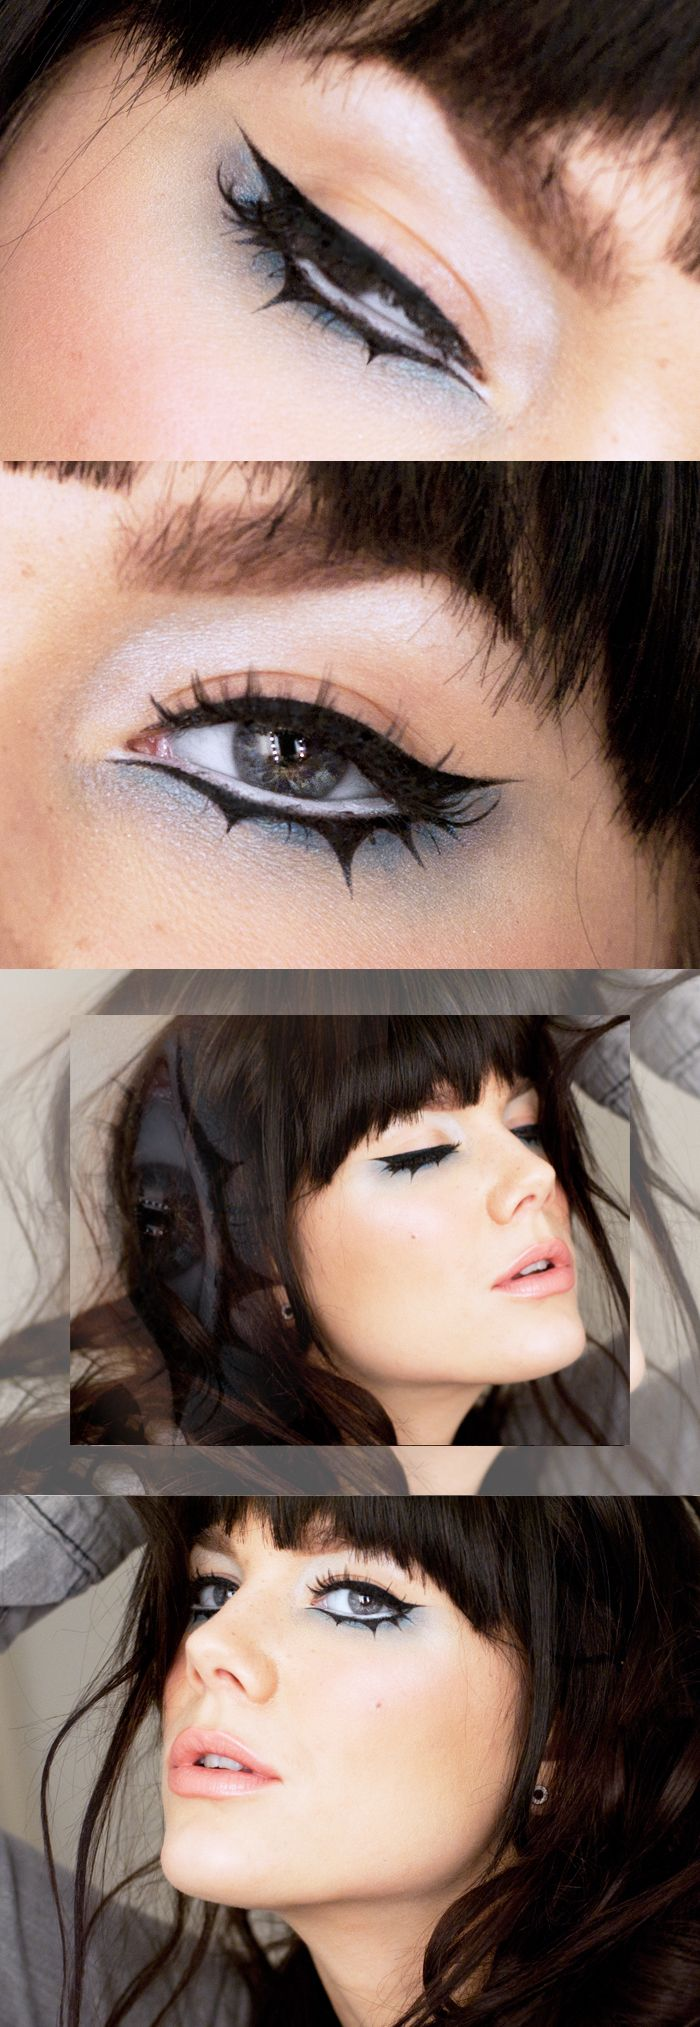 perfect eye makeup for an evil queen sorceress or pretty much any dark villain costume linda hallberg eyeliner styles goth aesthetic - Eyeshadow For Halloween